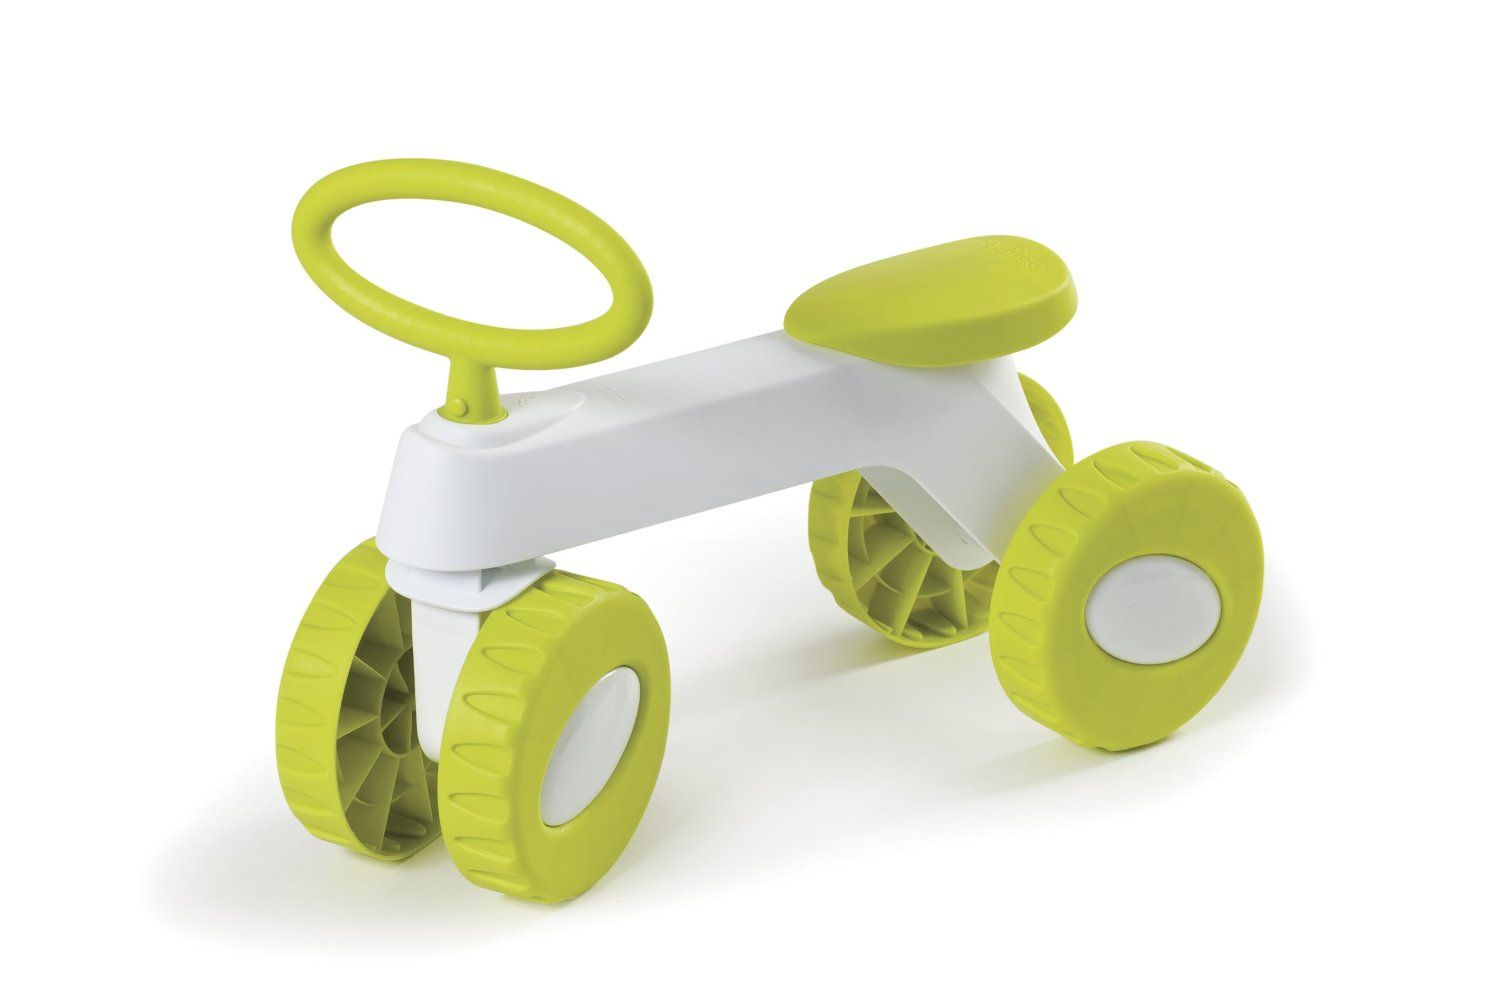 The Hoppop Atto Ride On Is A Great Ride On Toy For A 1 -1814